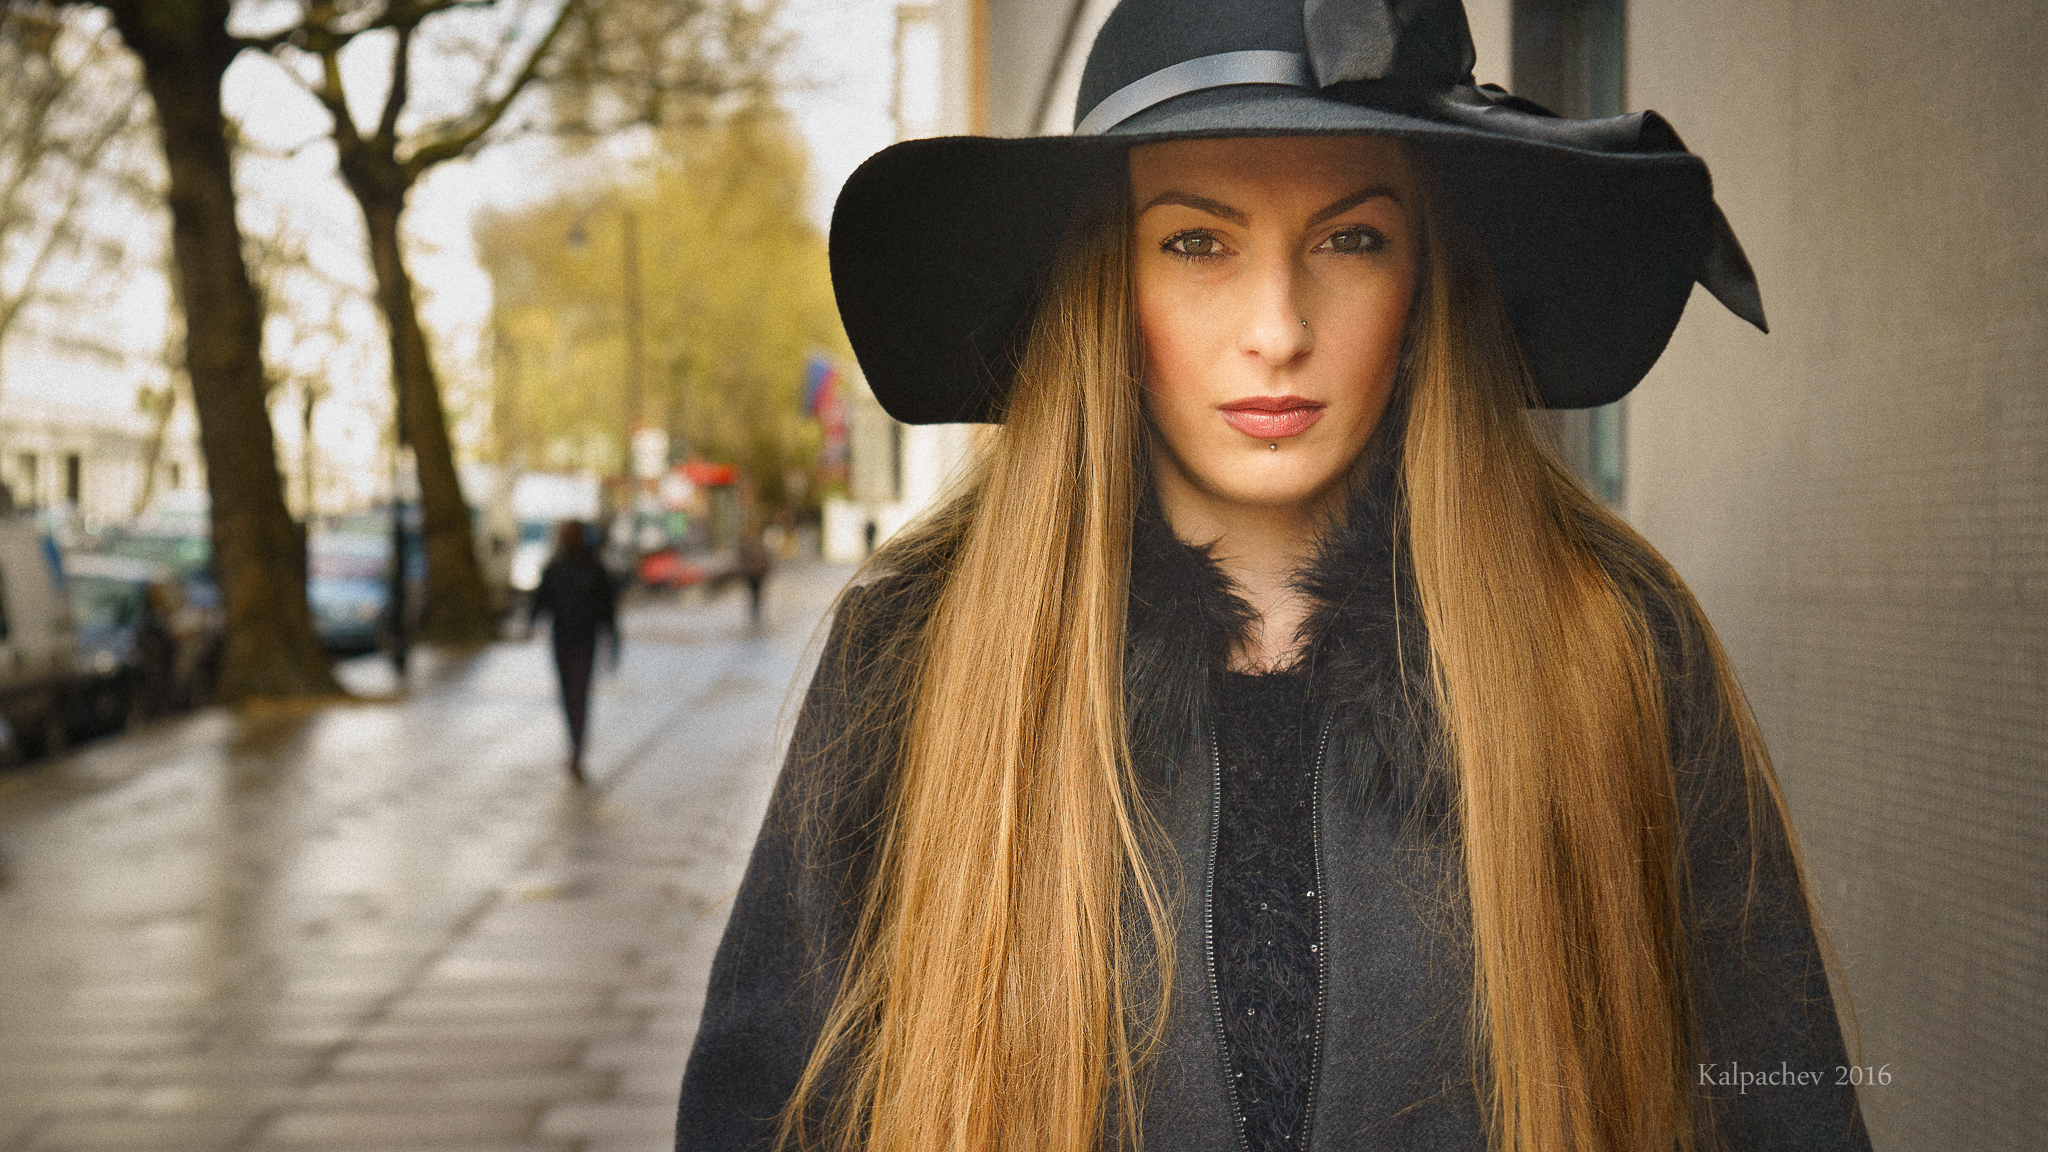 The Hat, the model and a good mood